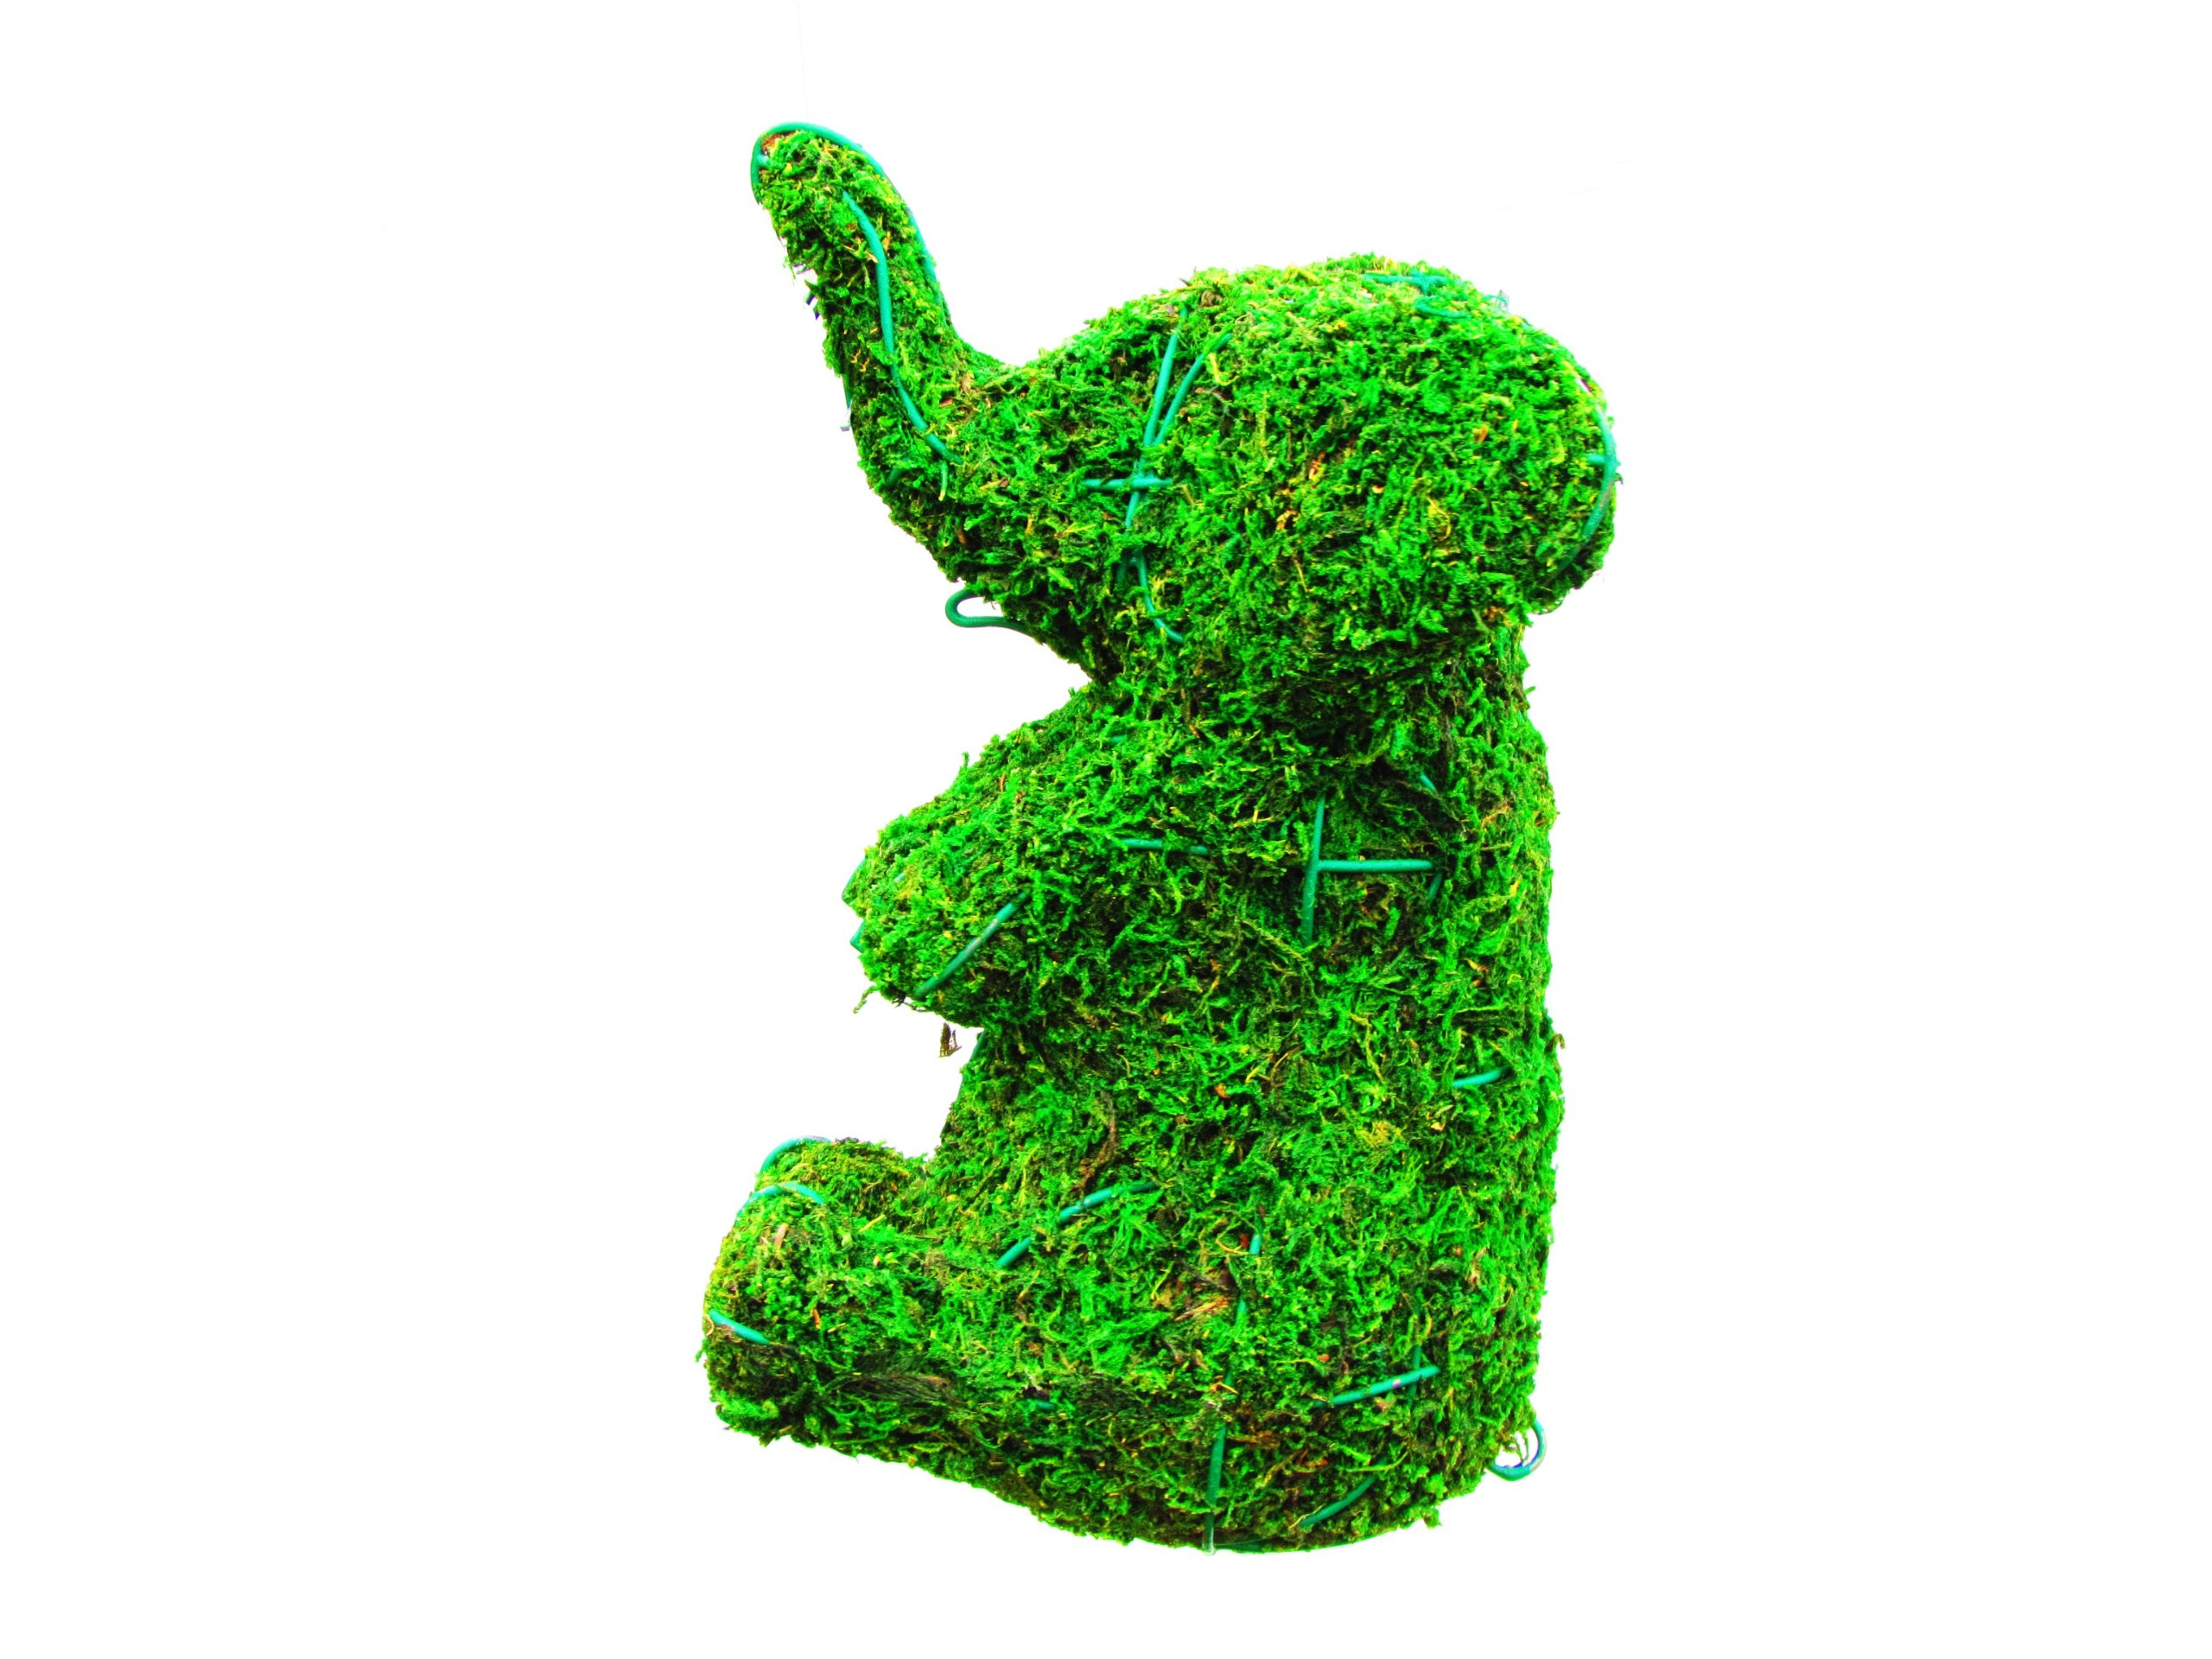 Elephant Sitting 16 inches high x 13 inches long x 9 inches wide w/ Moss Topiary Frame , Handmade Animal Decoration